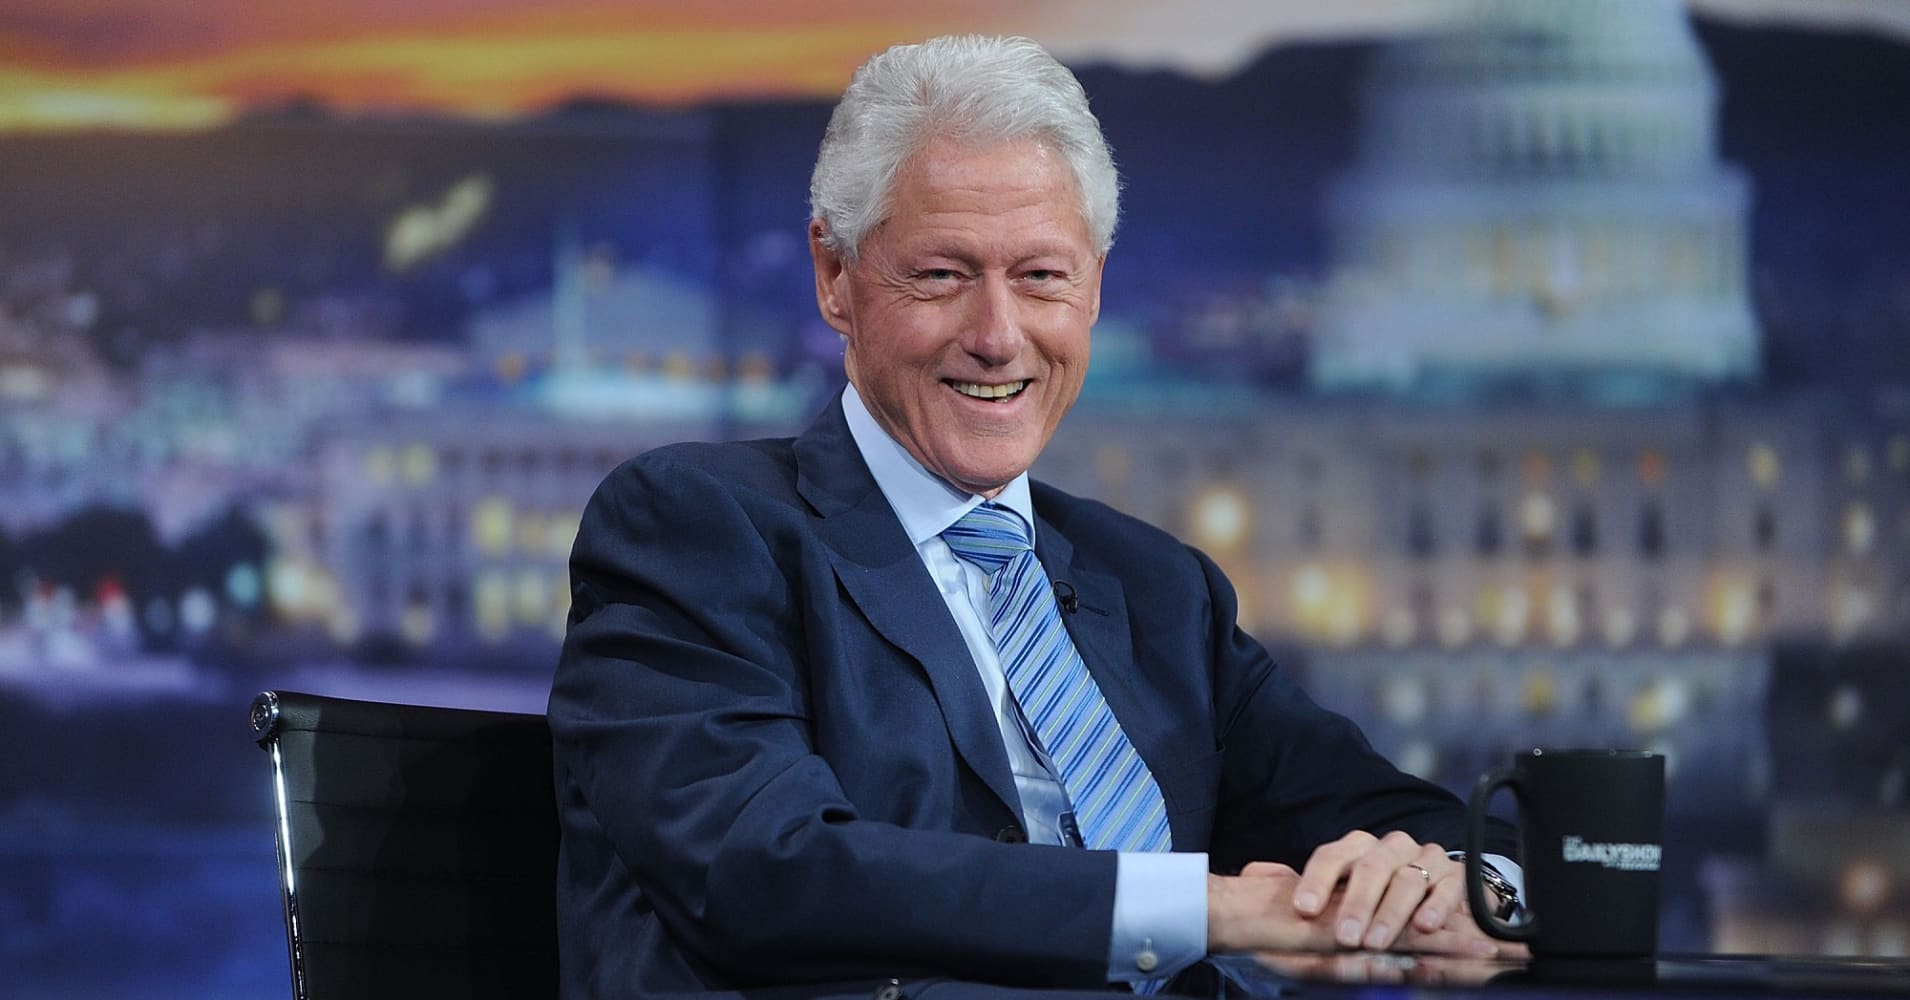 Former President Bill Clinton attends The Daily Show with Trevor Noah on Comedy Central.